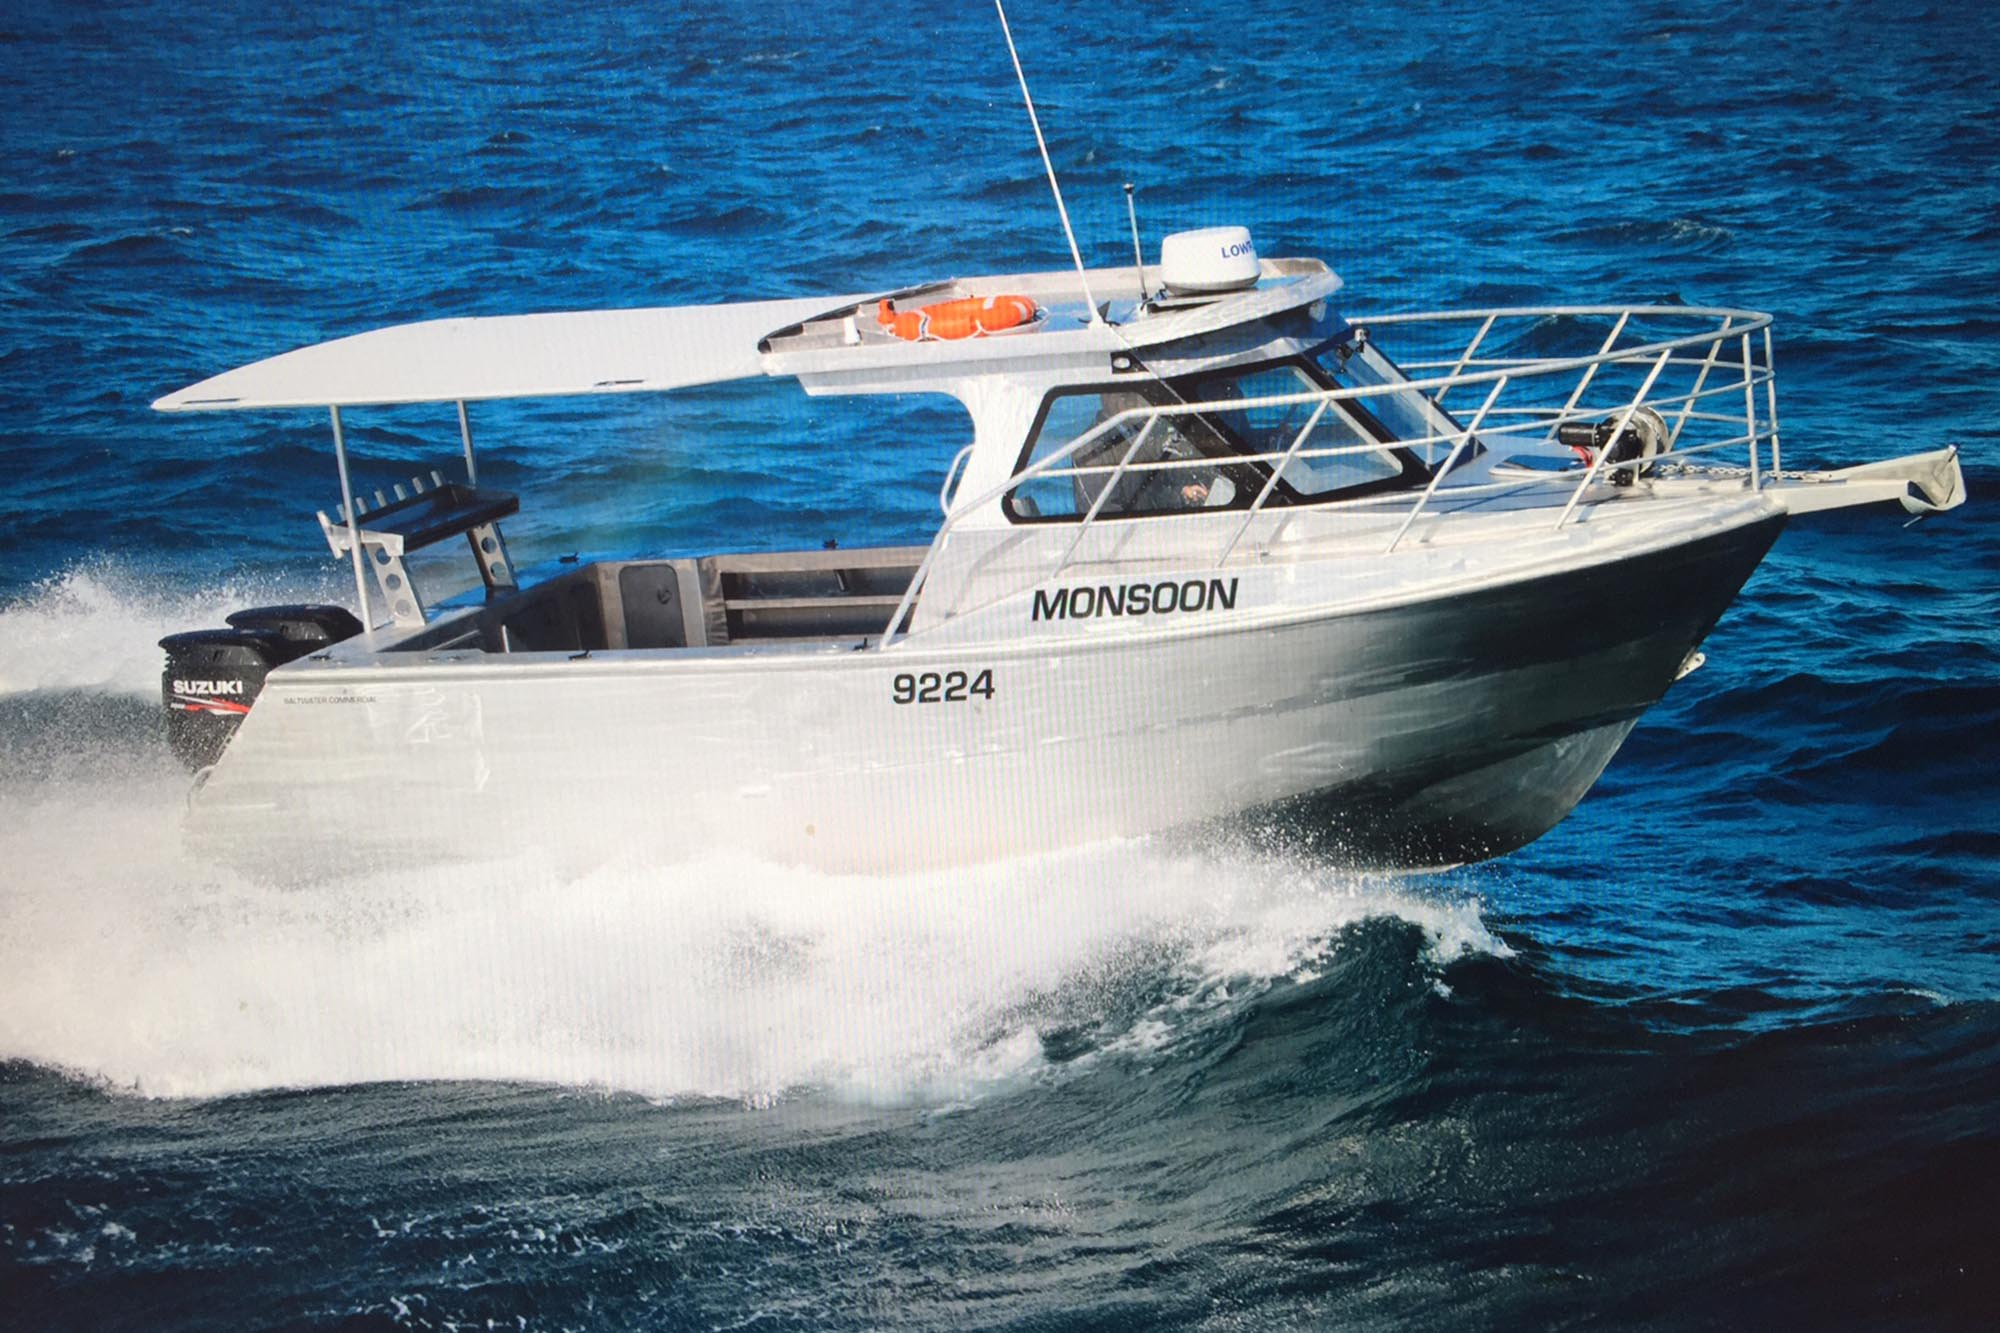 Monsoon Commercial Fishing Co.